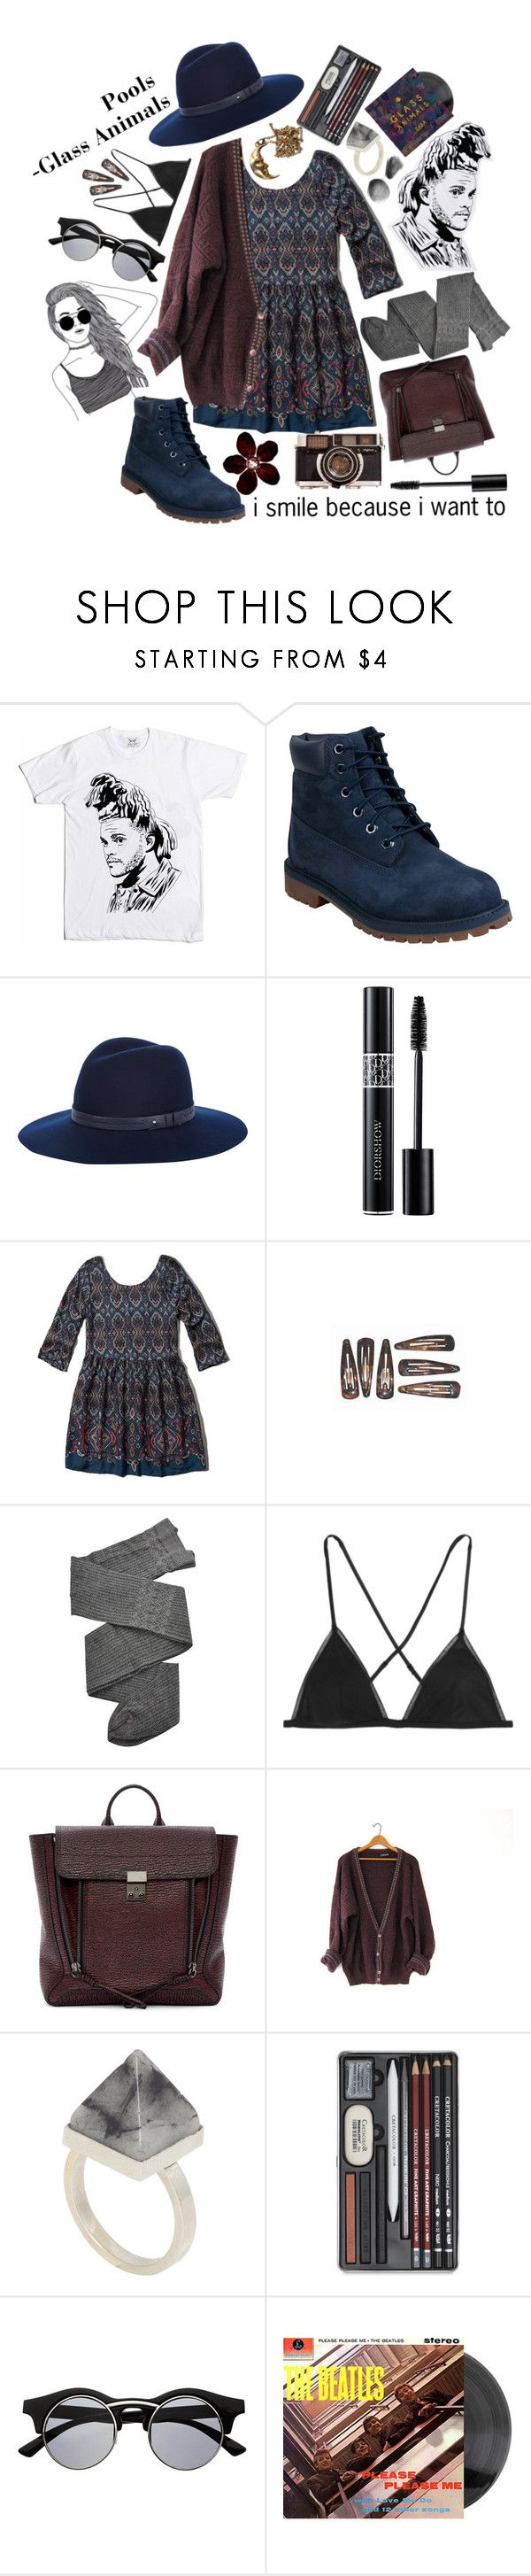 """Pools -Glass Animals"" by jackiet0201 ❤ liked on Polyvore featuring xO Design, Timberland, rag & bone, Abercrombie & Fitch, Trasparenze, Kiki de Montparnasse, 3.1 Phillip Lim, Kelly Wearstler, Retrò and women's clothing"